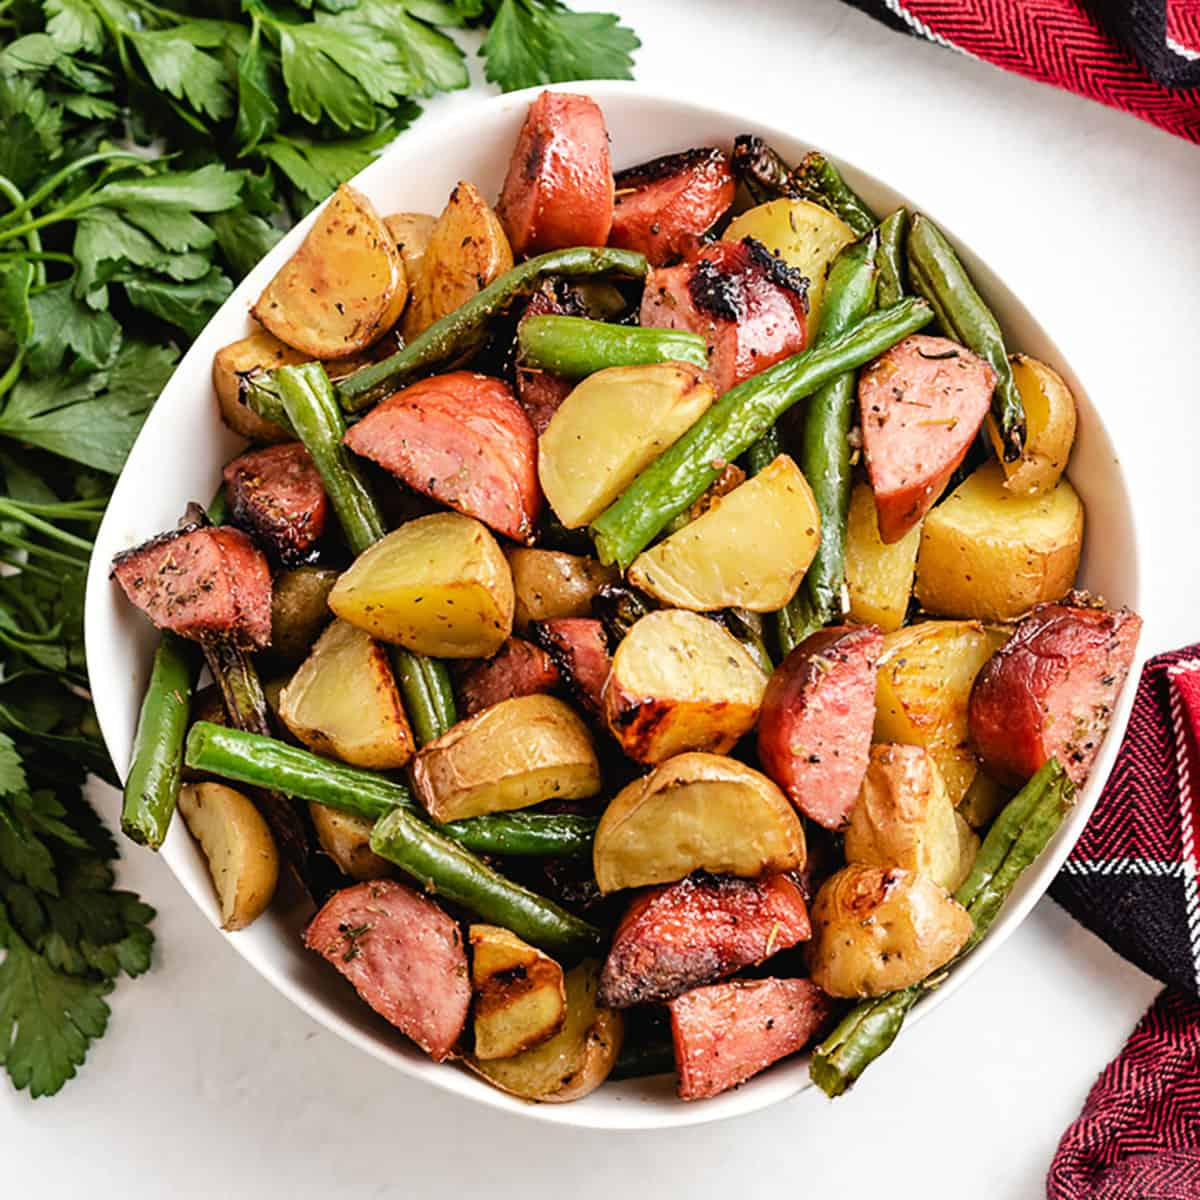 The cooked sausage green beans and potatoes in a bowl.